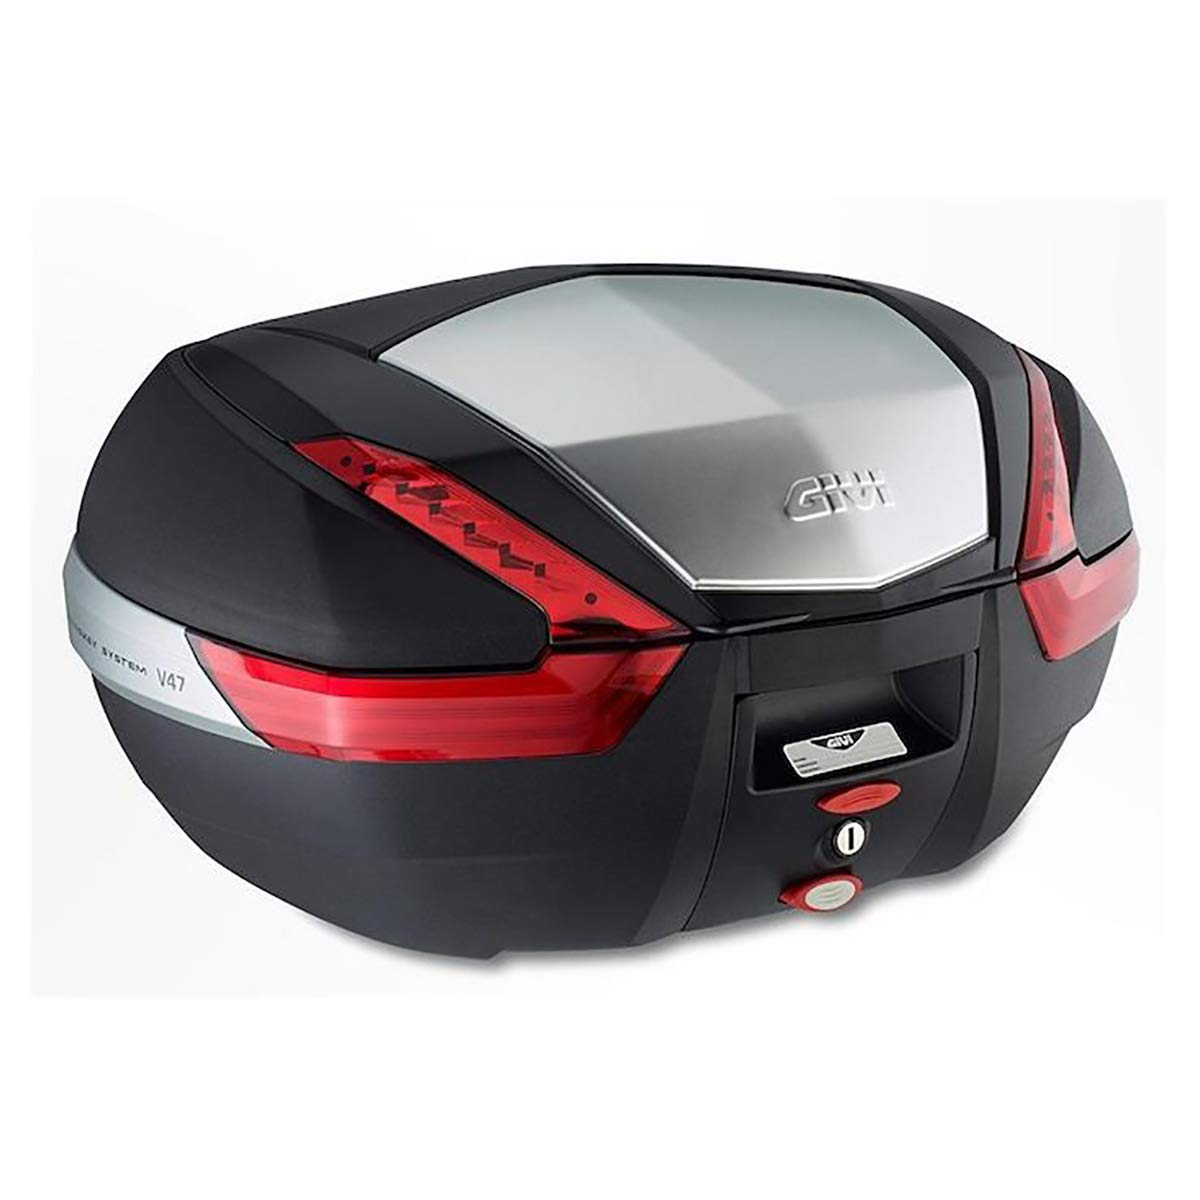 Givi V47N 47 liter Monokey Motorcycle Top Case by GIVI